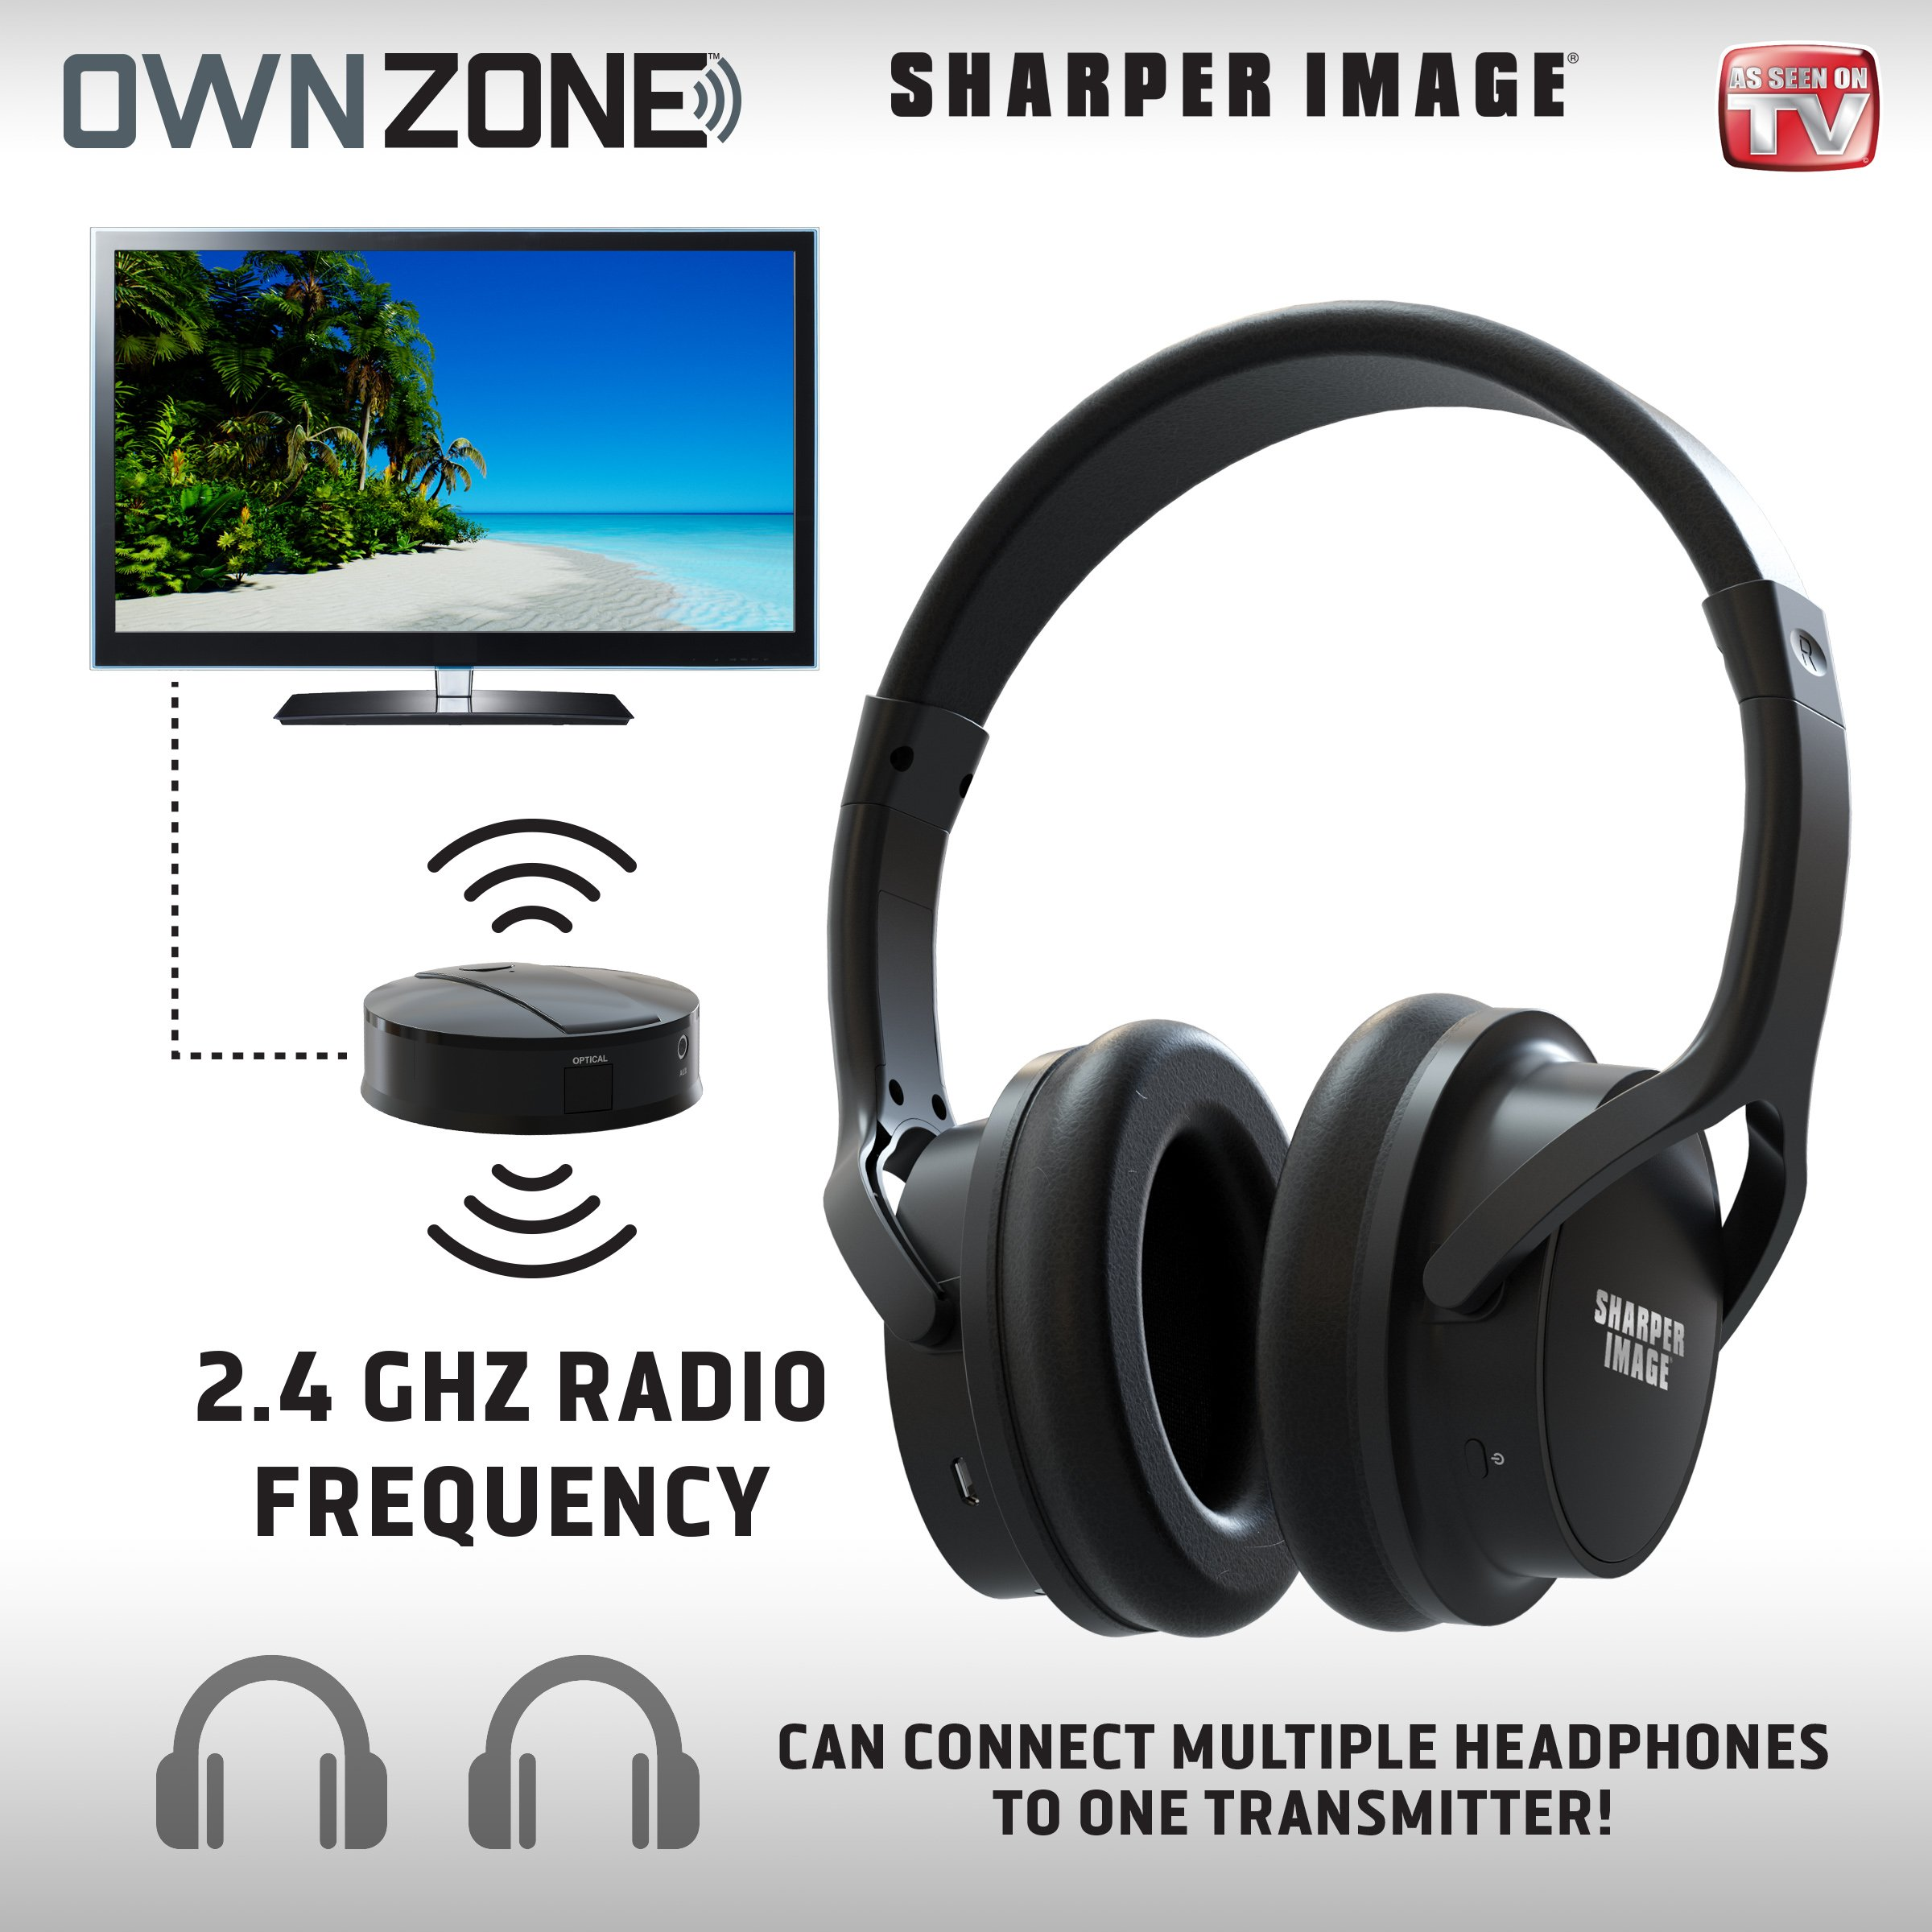 Sharper Image OWN ZONE Wireless Rechargeable TV Headphones- RF Connection, 2.4 GHz, Transmits Wirelessly up to 100ft, No Bluetooth Required, AUX, RCA, & Optical Cable Included (Black)